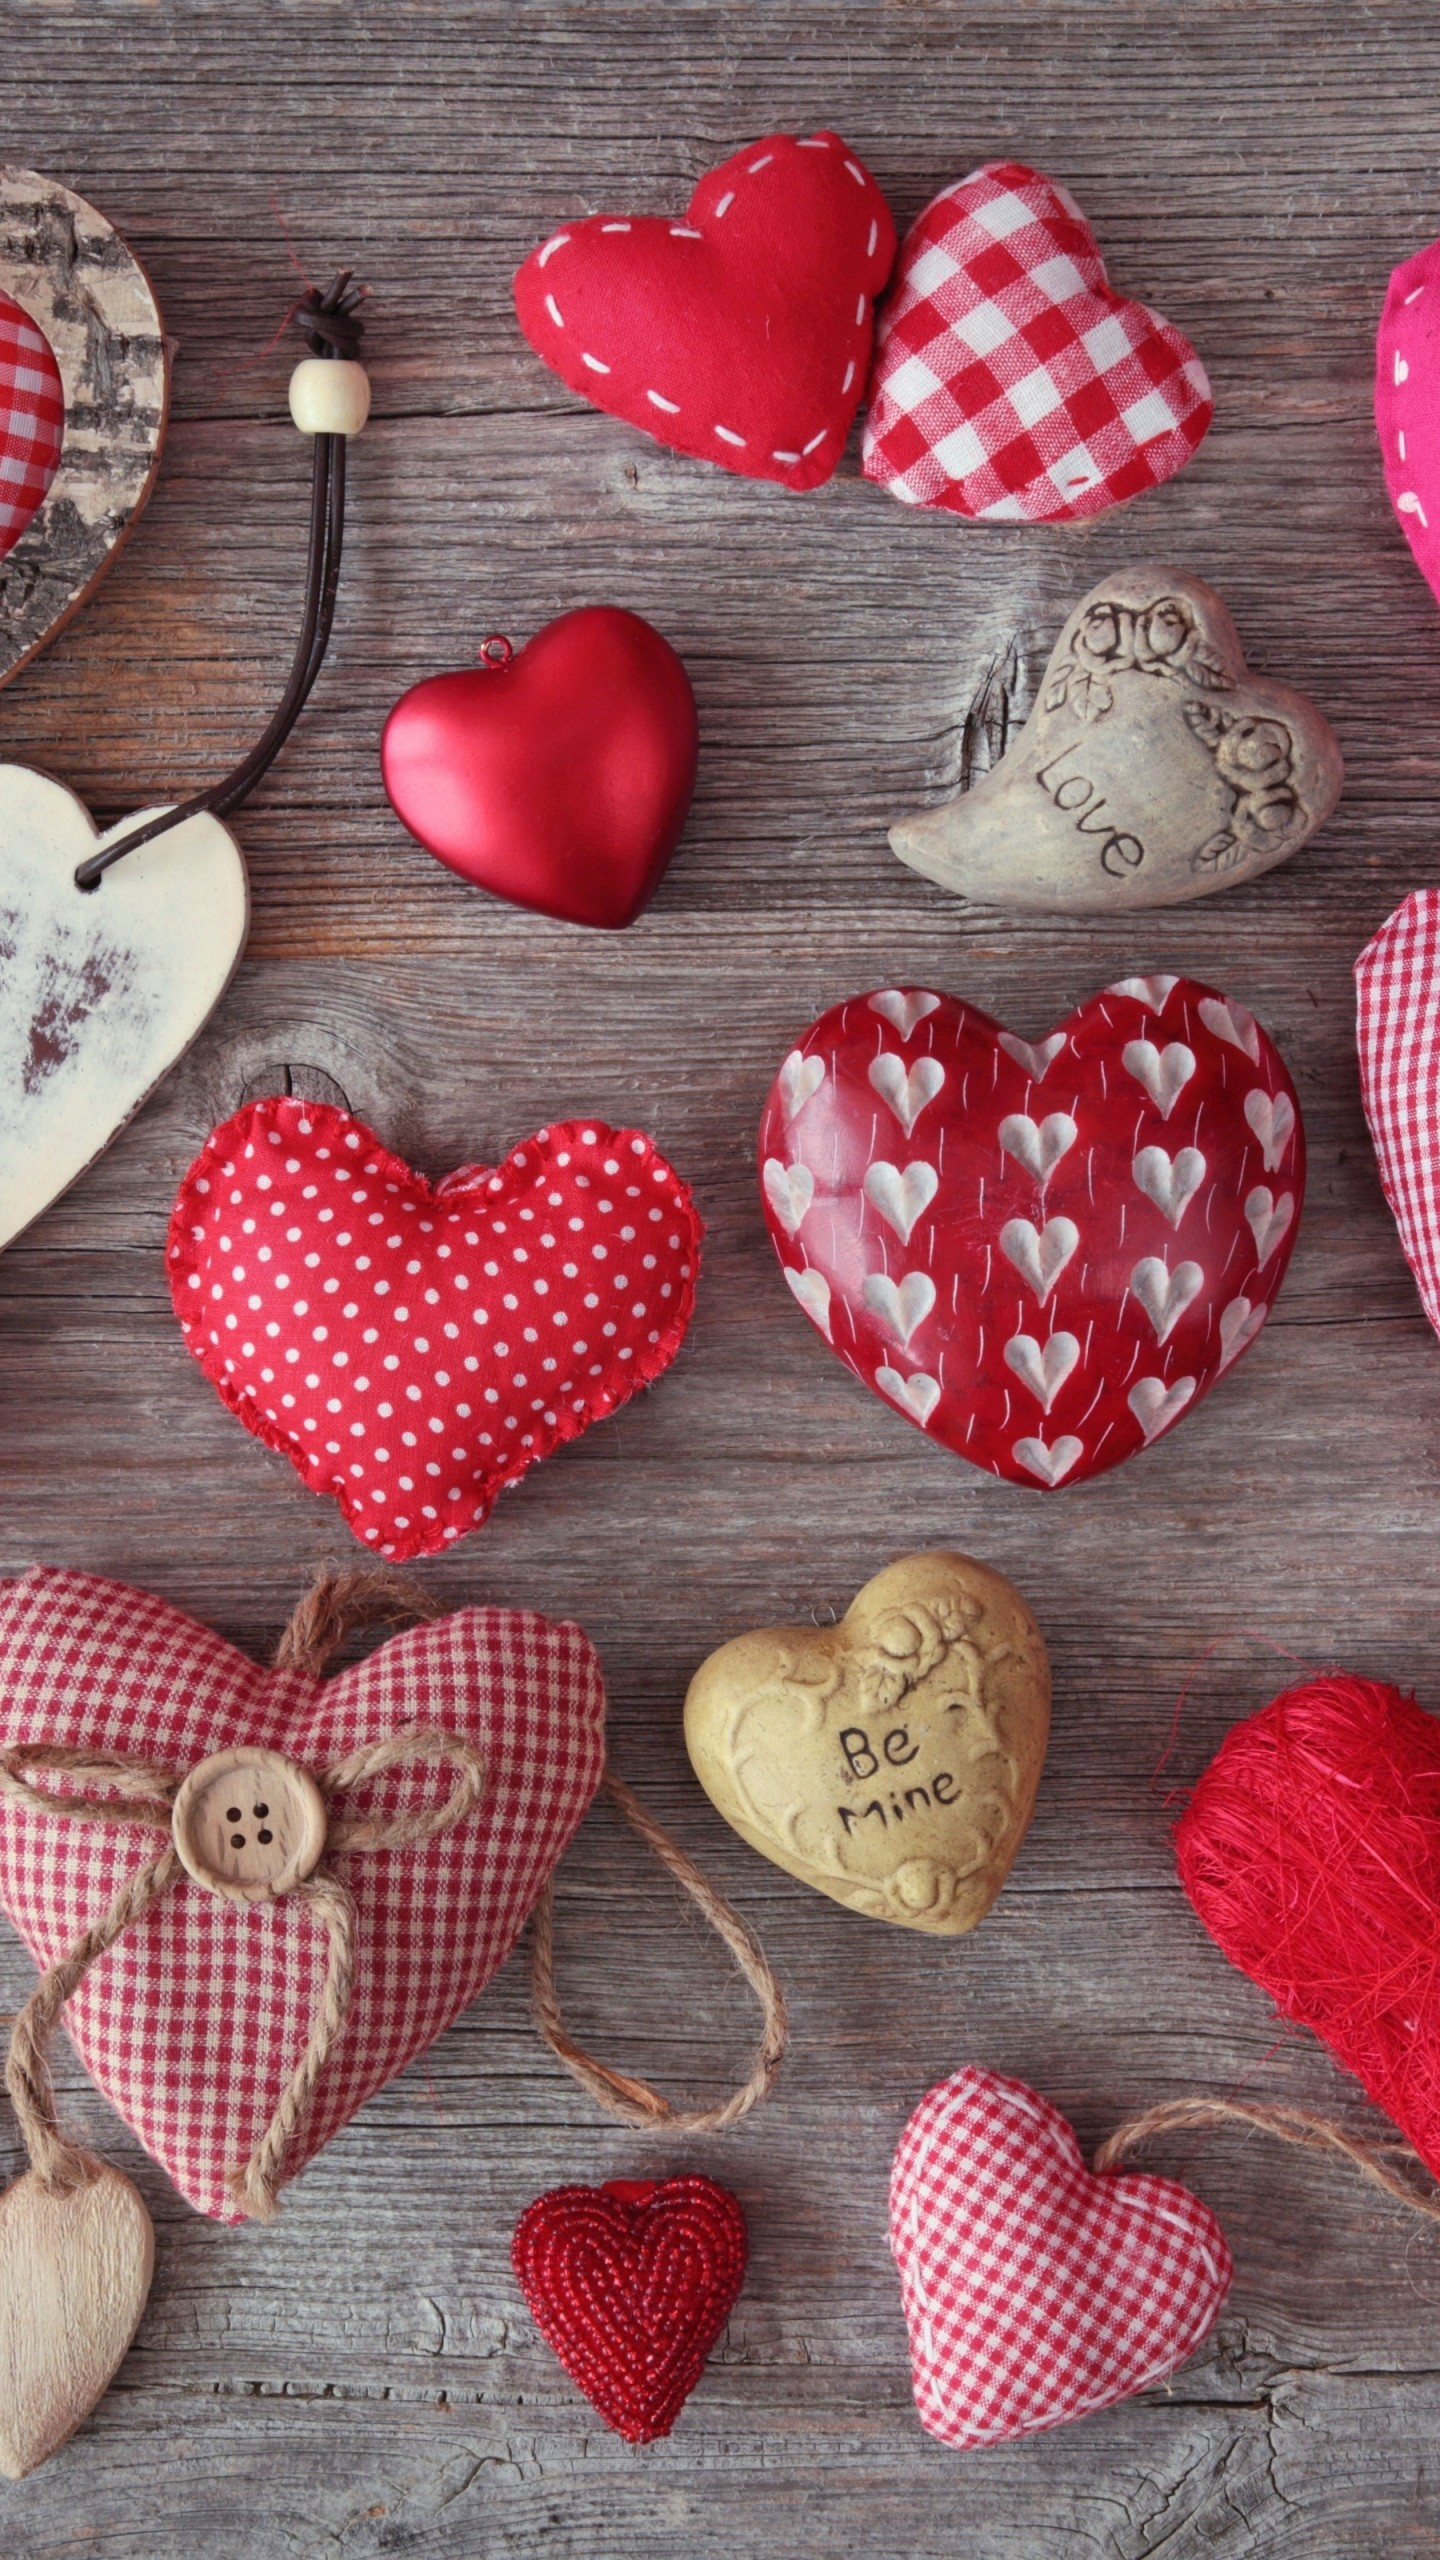 Wallpaper heart, hearts, cushions, fabric, red, pink, line,